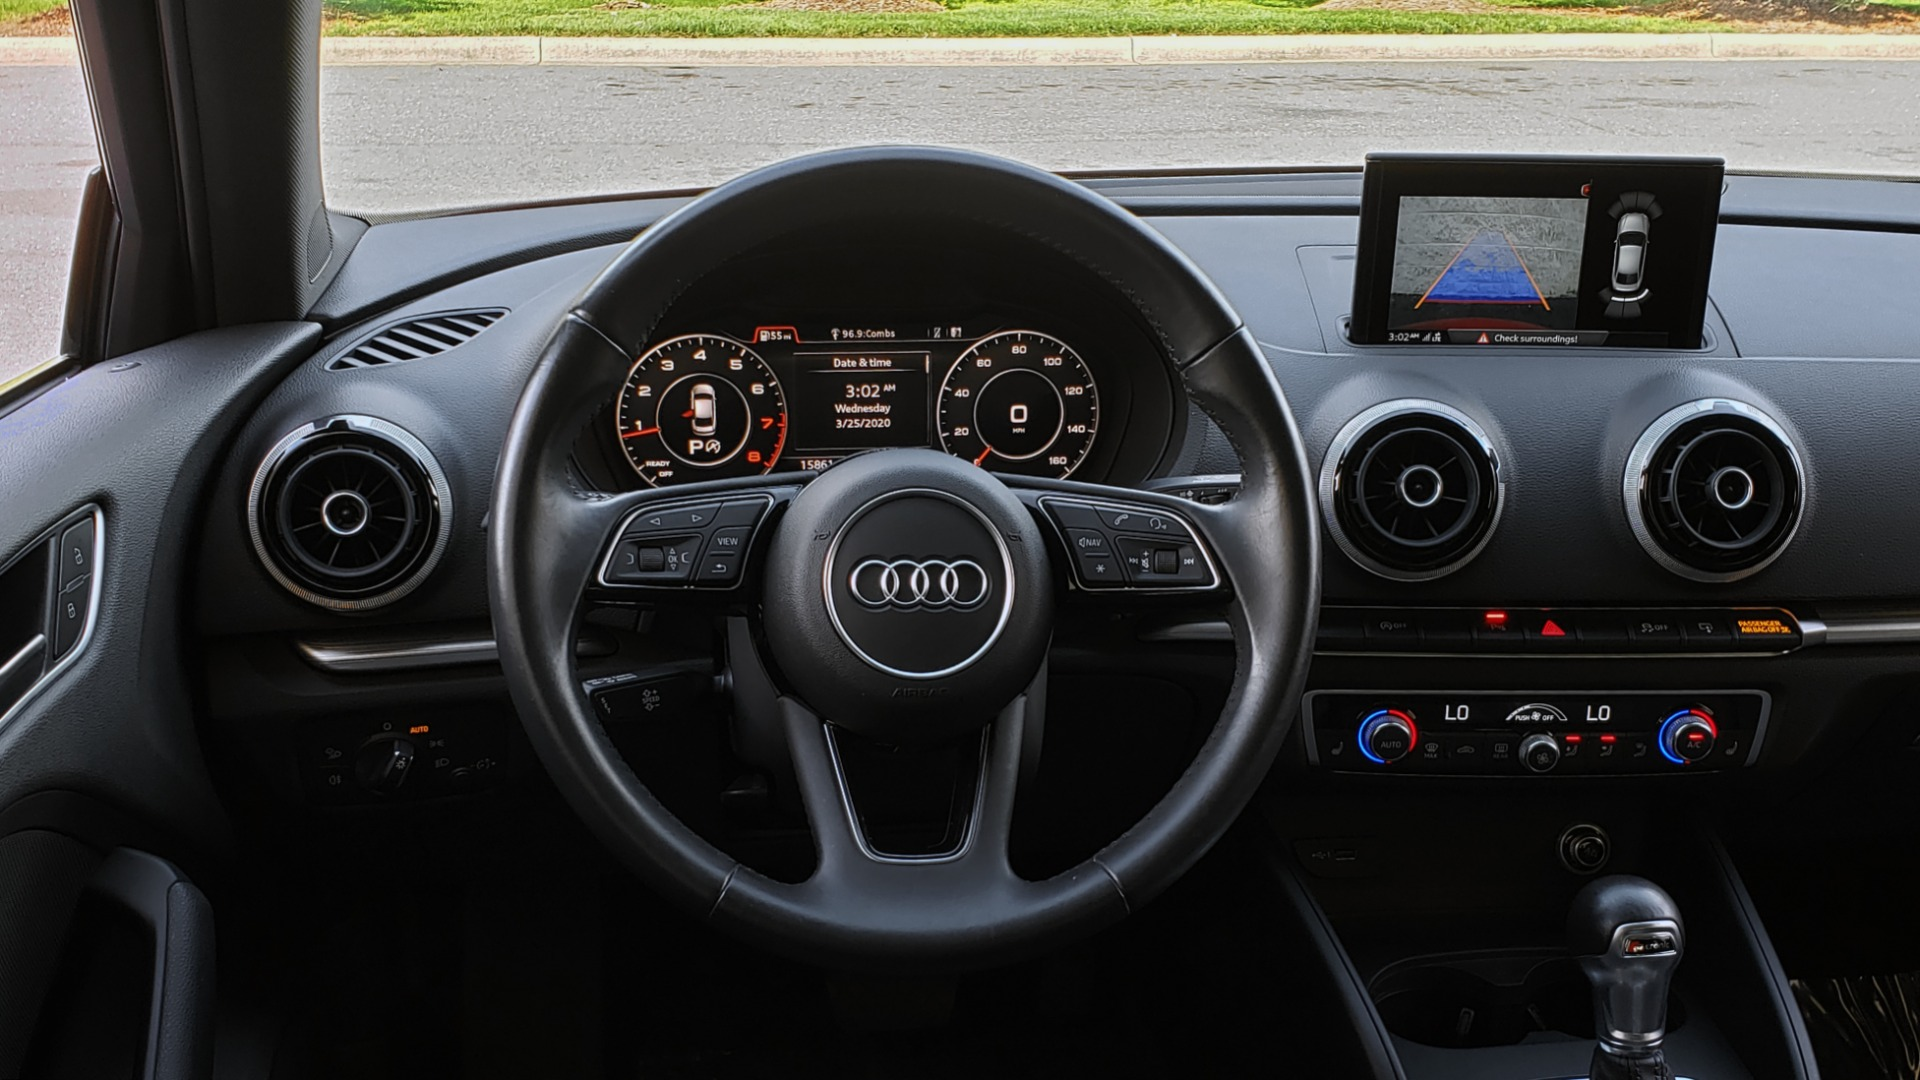 Used 2017 Audi A3 SEDAN PREMIUM PLUS / S-TRONIC / NAV / TECH / SUNROOF / REARVIEW for sale Sold at Formula Imports in Charlotte NC 28227 38